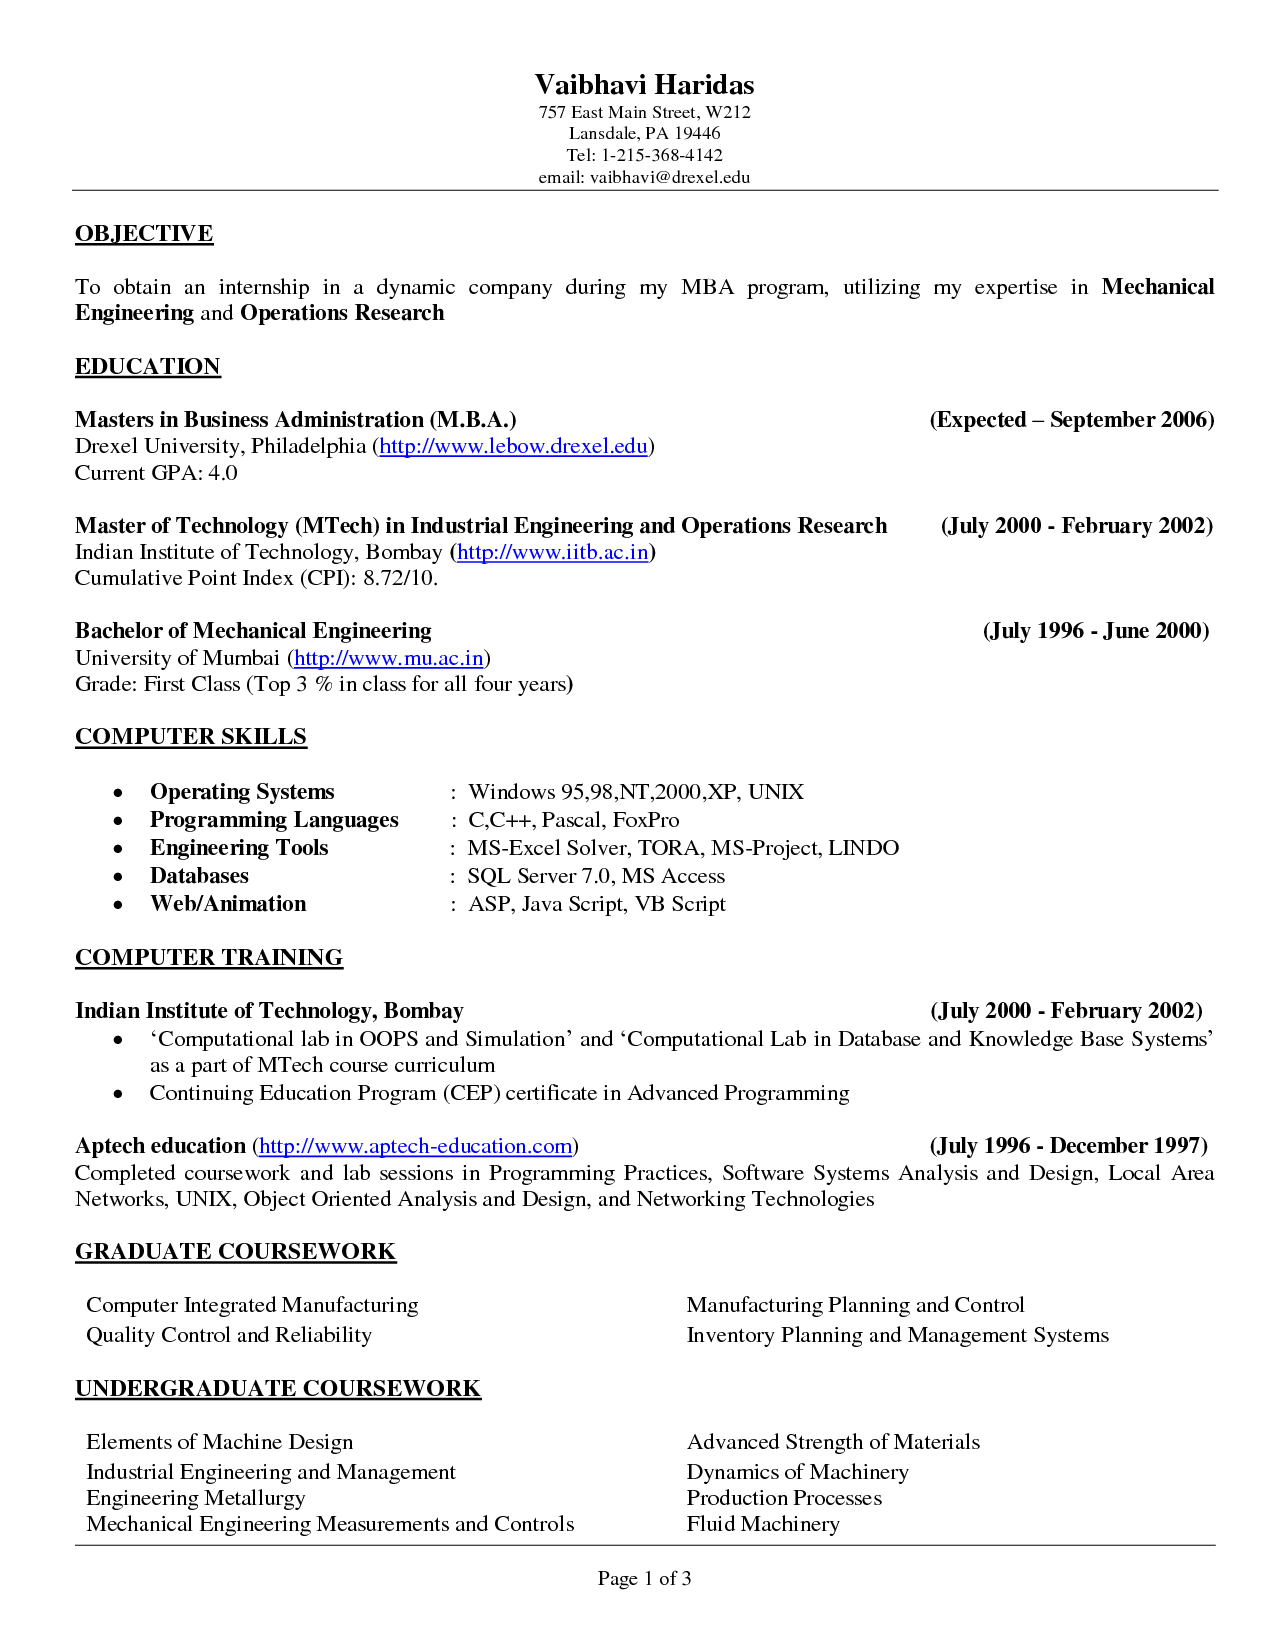 Resume Examples Internship In Dynamic Company Objective Resume With